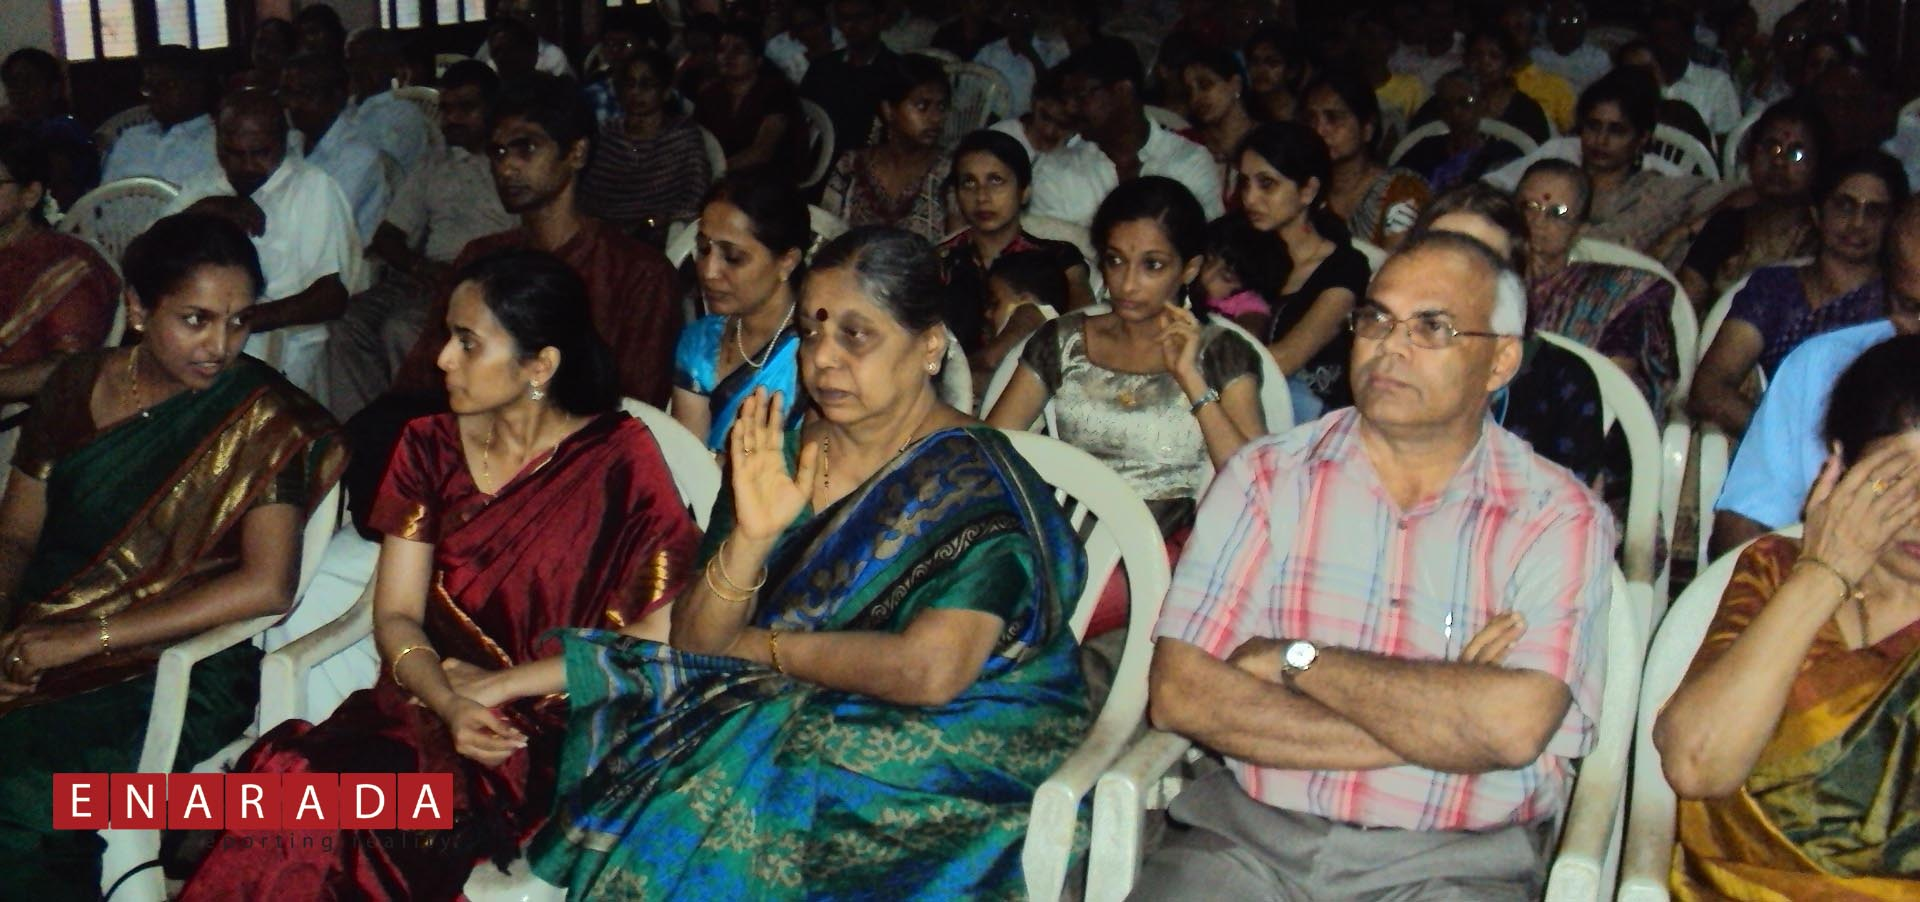 Section of the distinguished audience